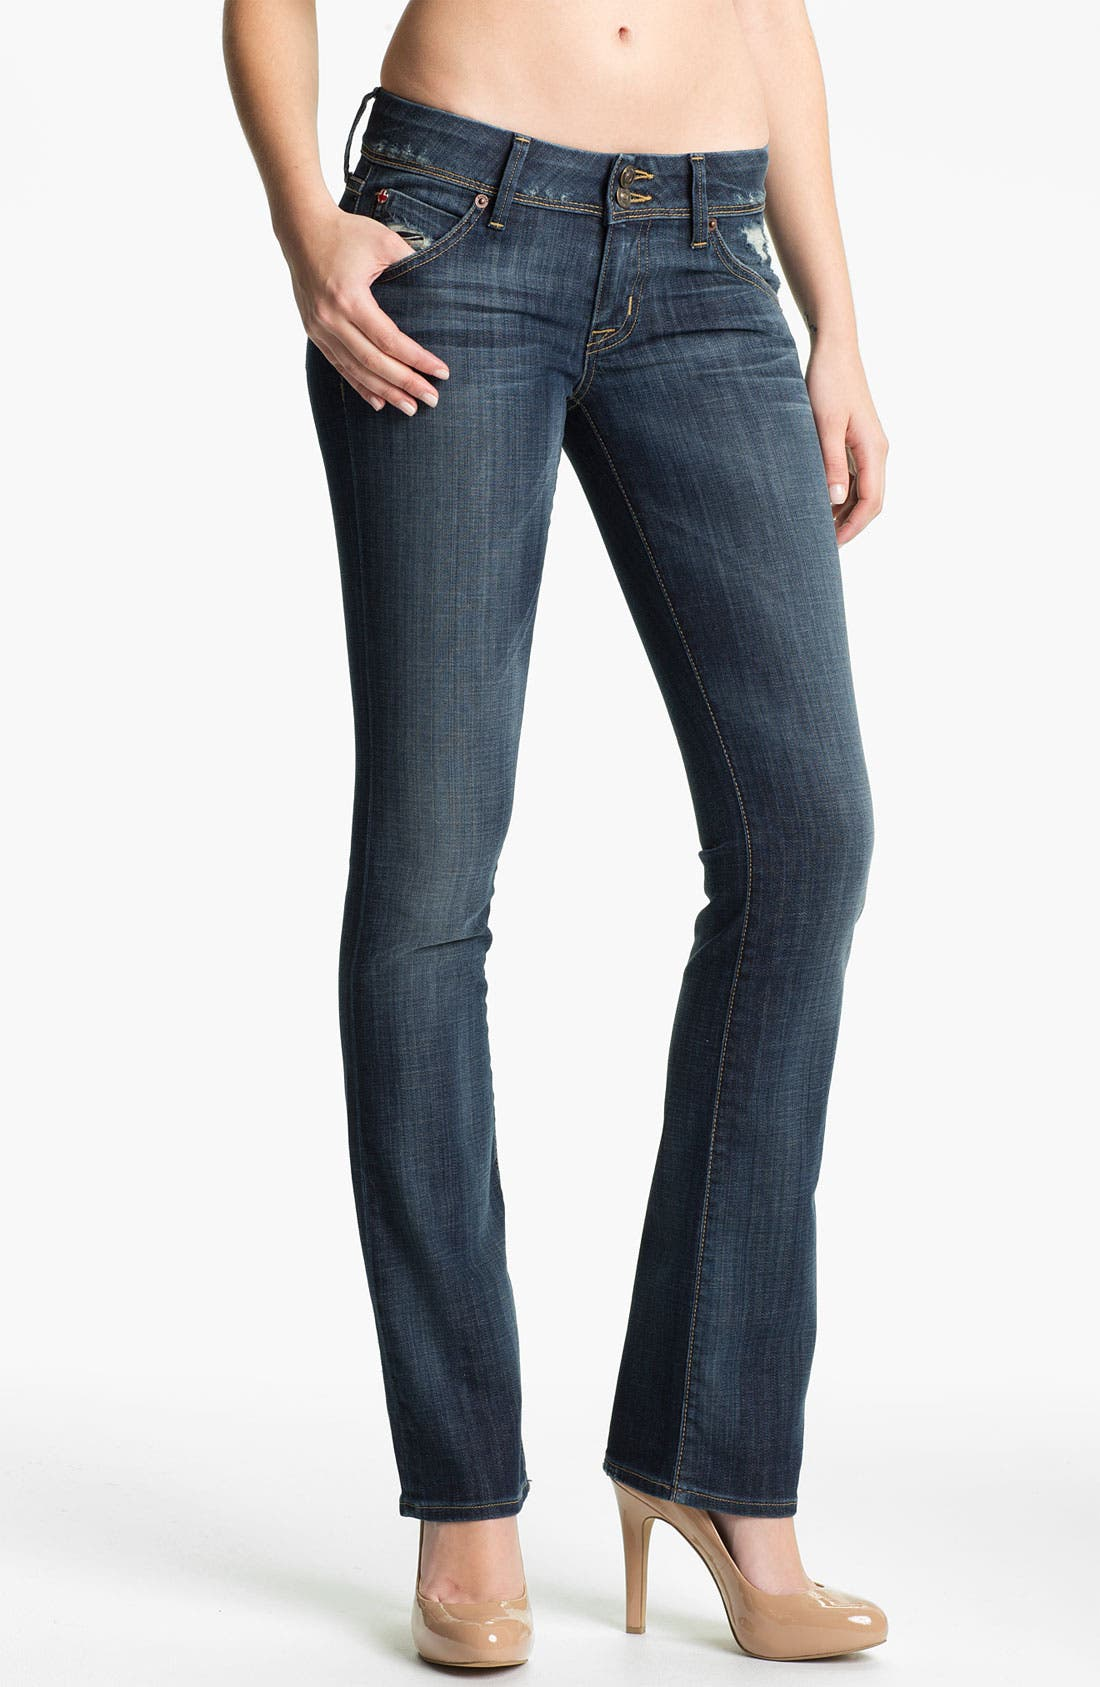 Alternate Image 1 Selected - Hudson Jeans 'Beth' Baby Bootcut Jeans (Whitcomb)